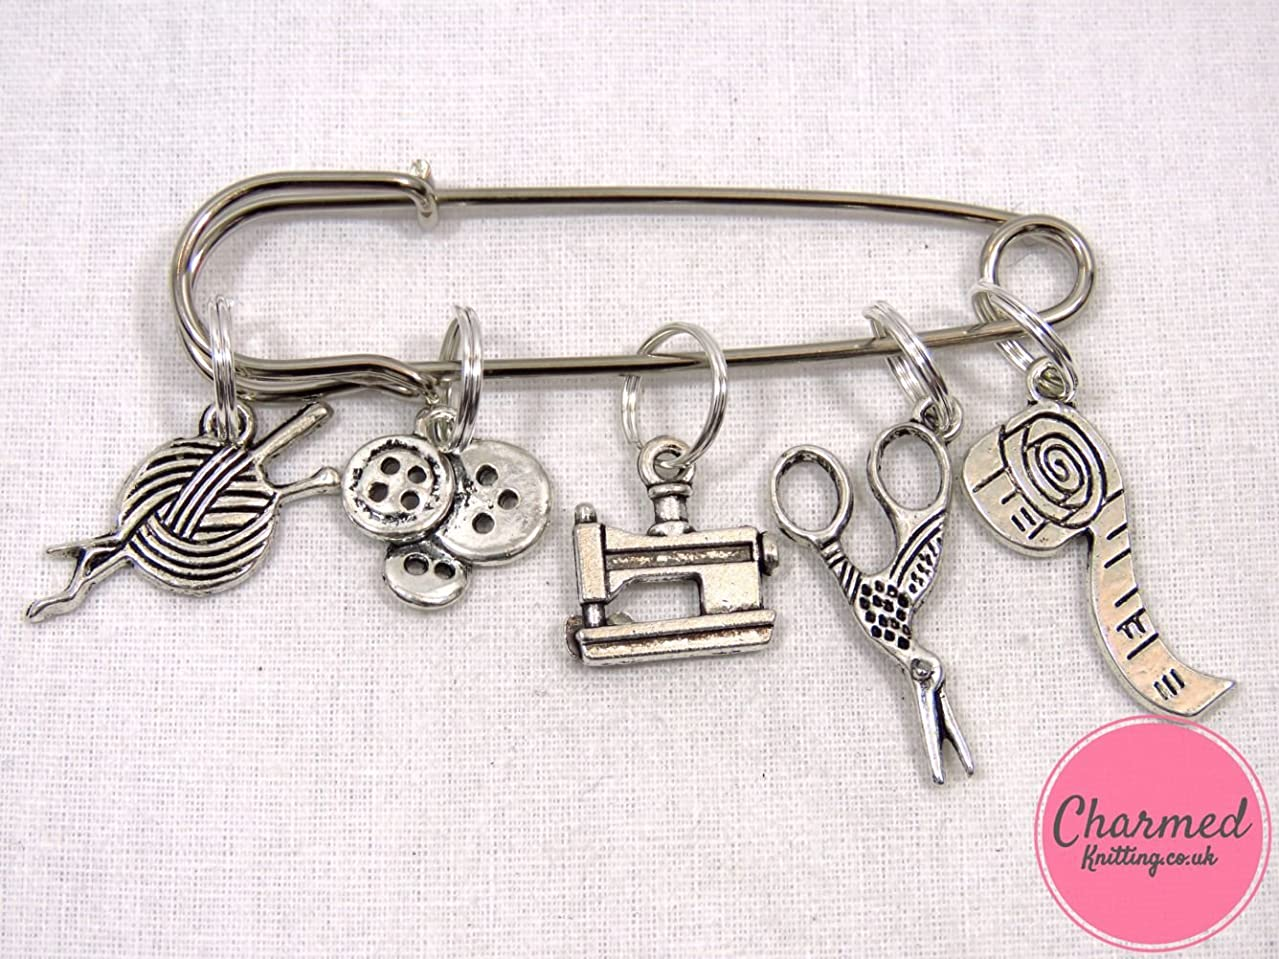 Sewing Kit - 5 Silver Knitting Stitch Markers by Charmed Knitting